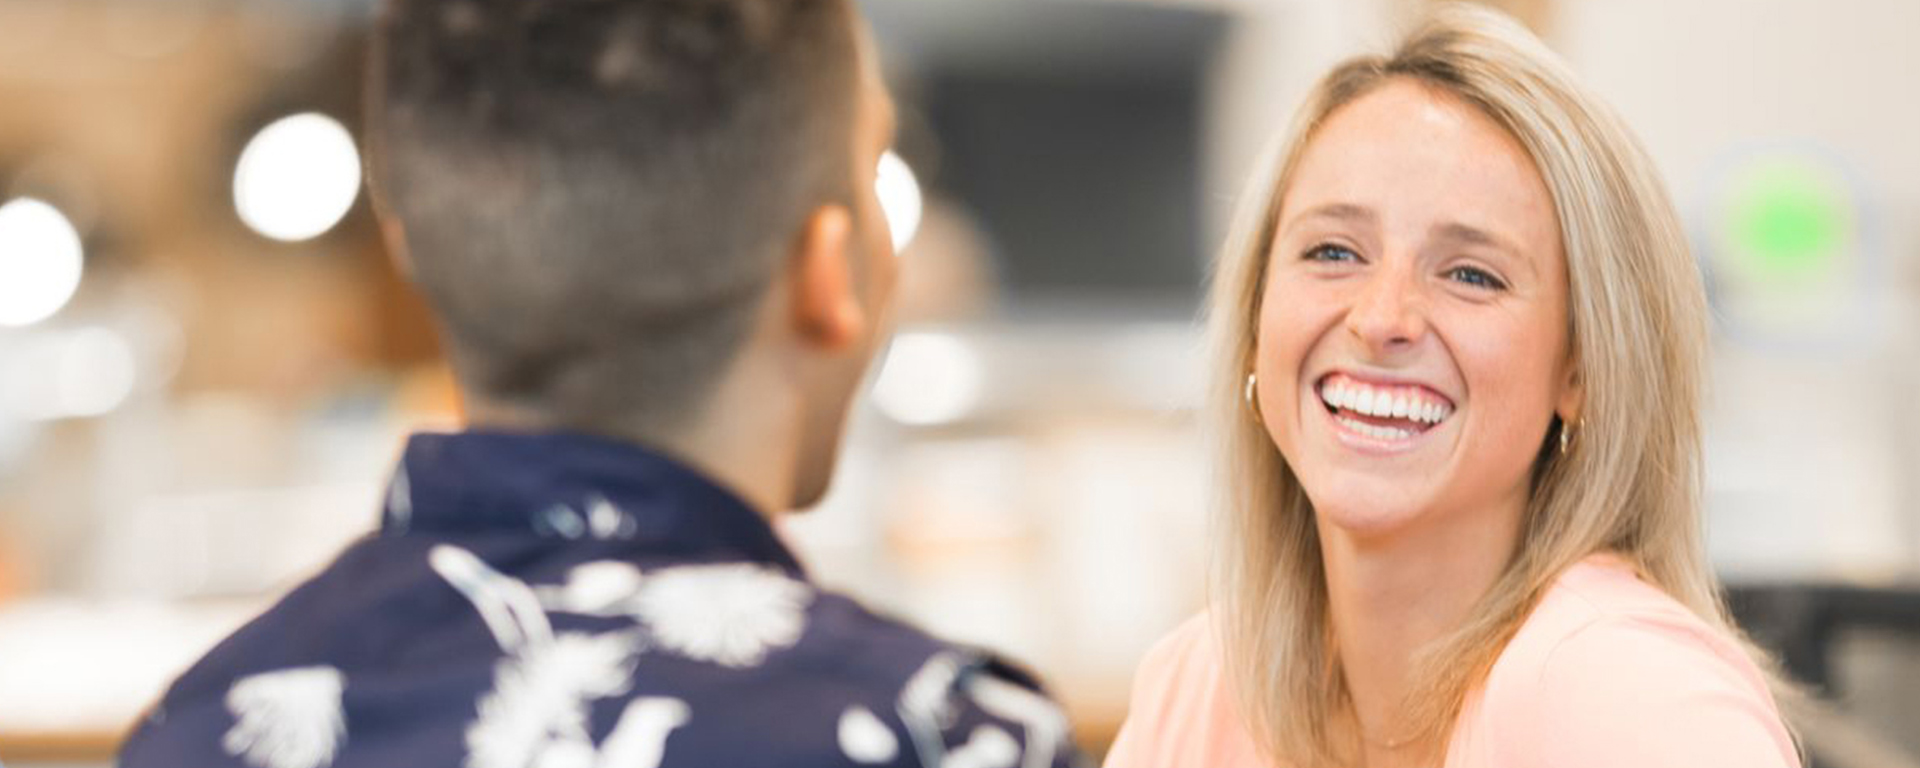 Capital One associate smiles and laughs with her colleague whose back is towards the camera, talking about Capital One's Battle of the Binge-Watching, a bracket for tv shows used to help the community